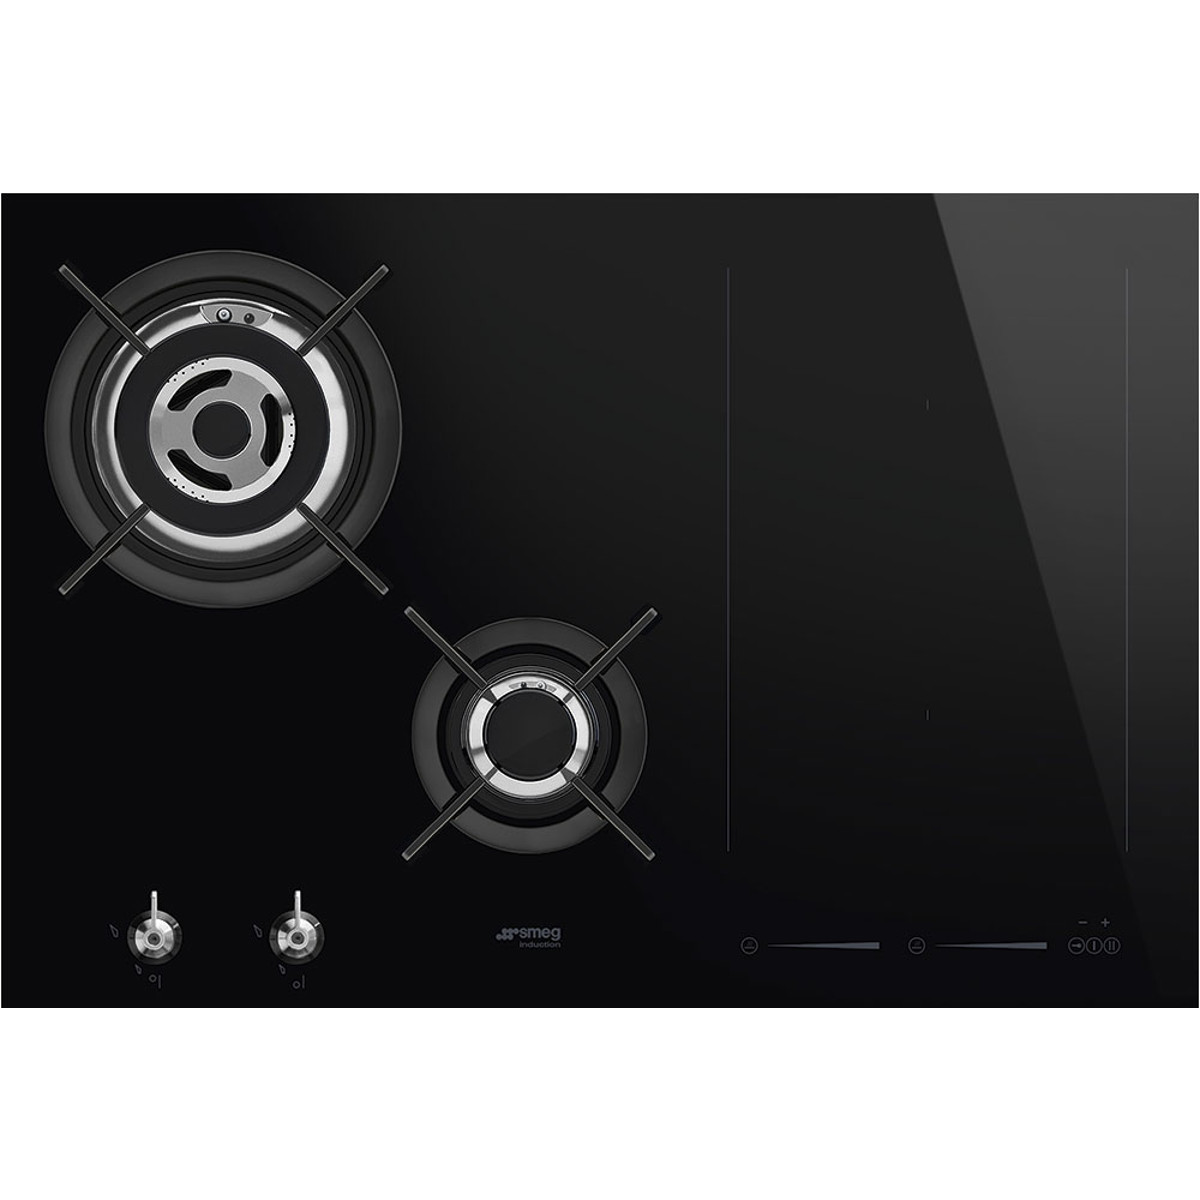 Plaque Induction Multi Zone Smeg Pm3721wld New Classic Aesthetic 75cm Mixed Fuel Hob